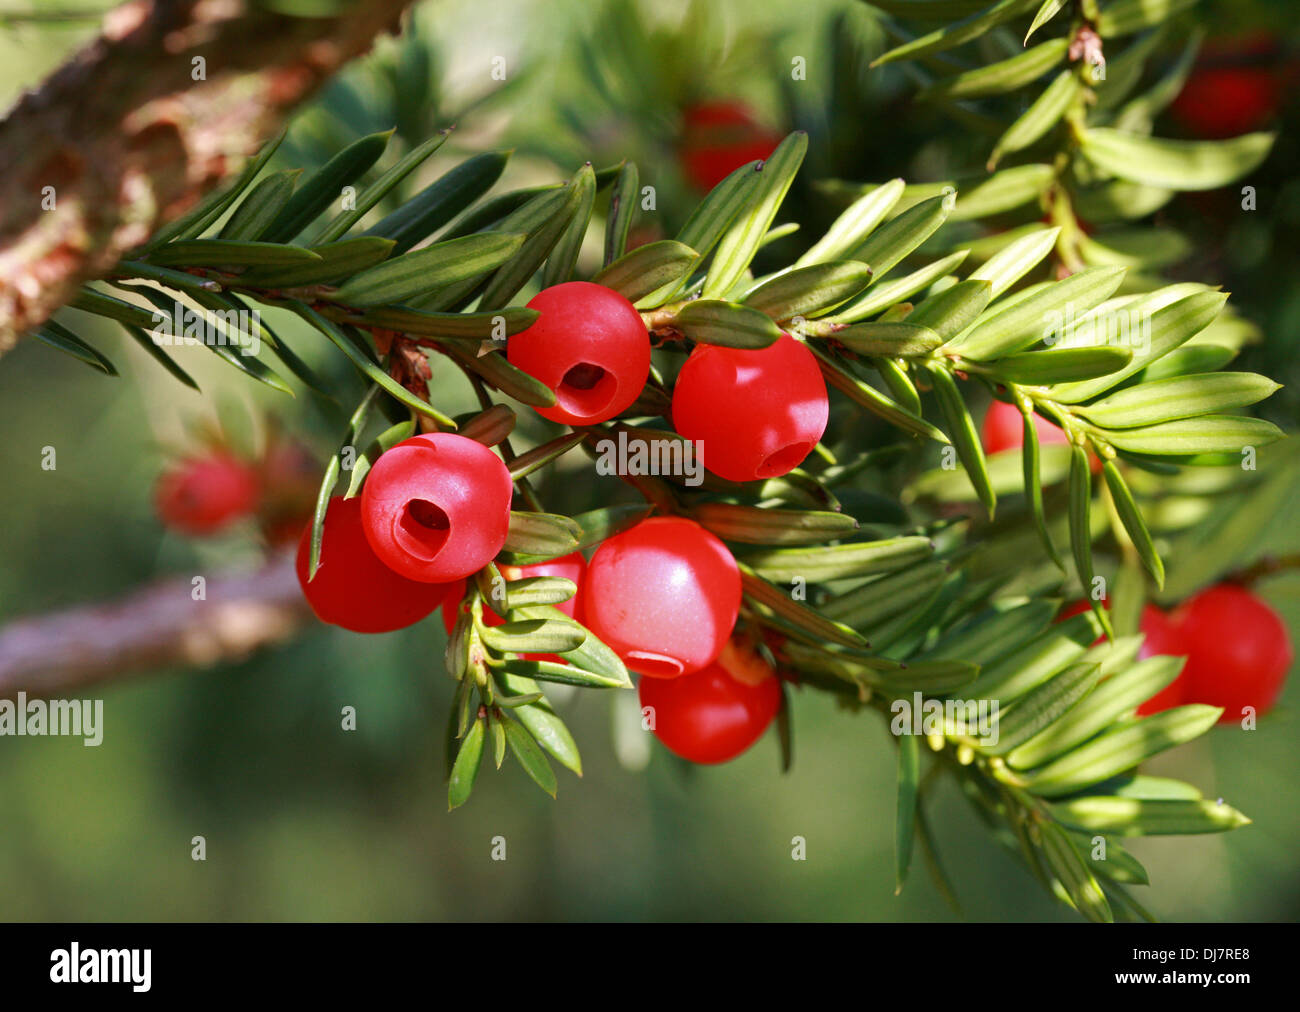 Japanese Yew or Spreading Yew, Taxus cuspidata 'Luteobaccata', Taxaceae. Native to Japan, Korea, northeast China and the extreme - Stock Image